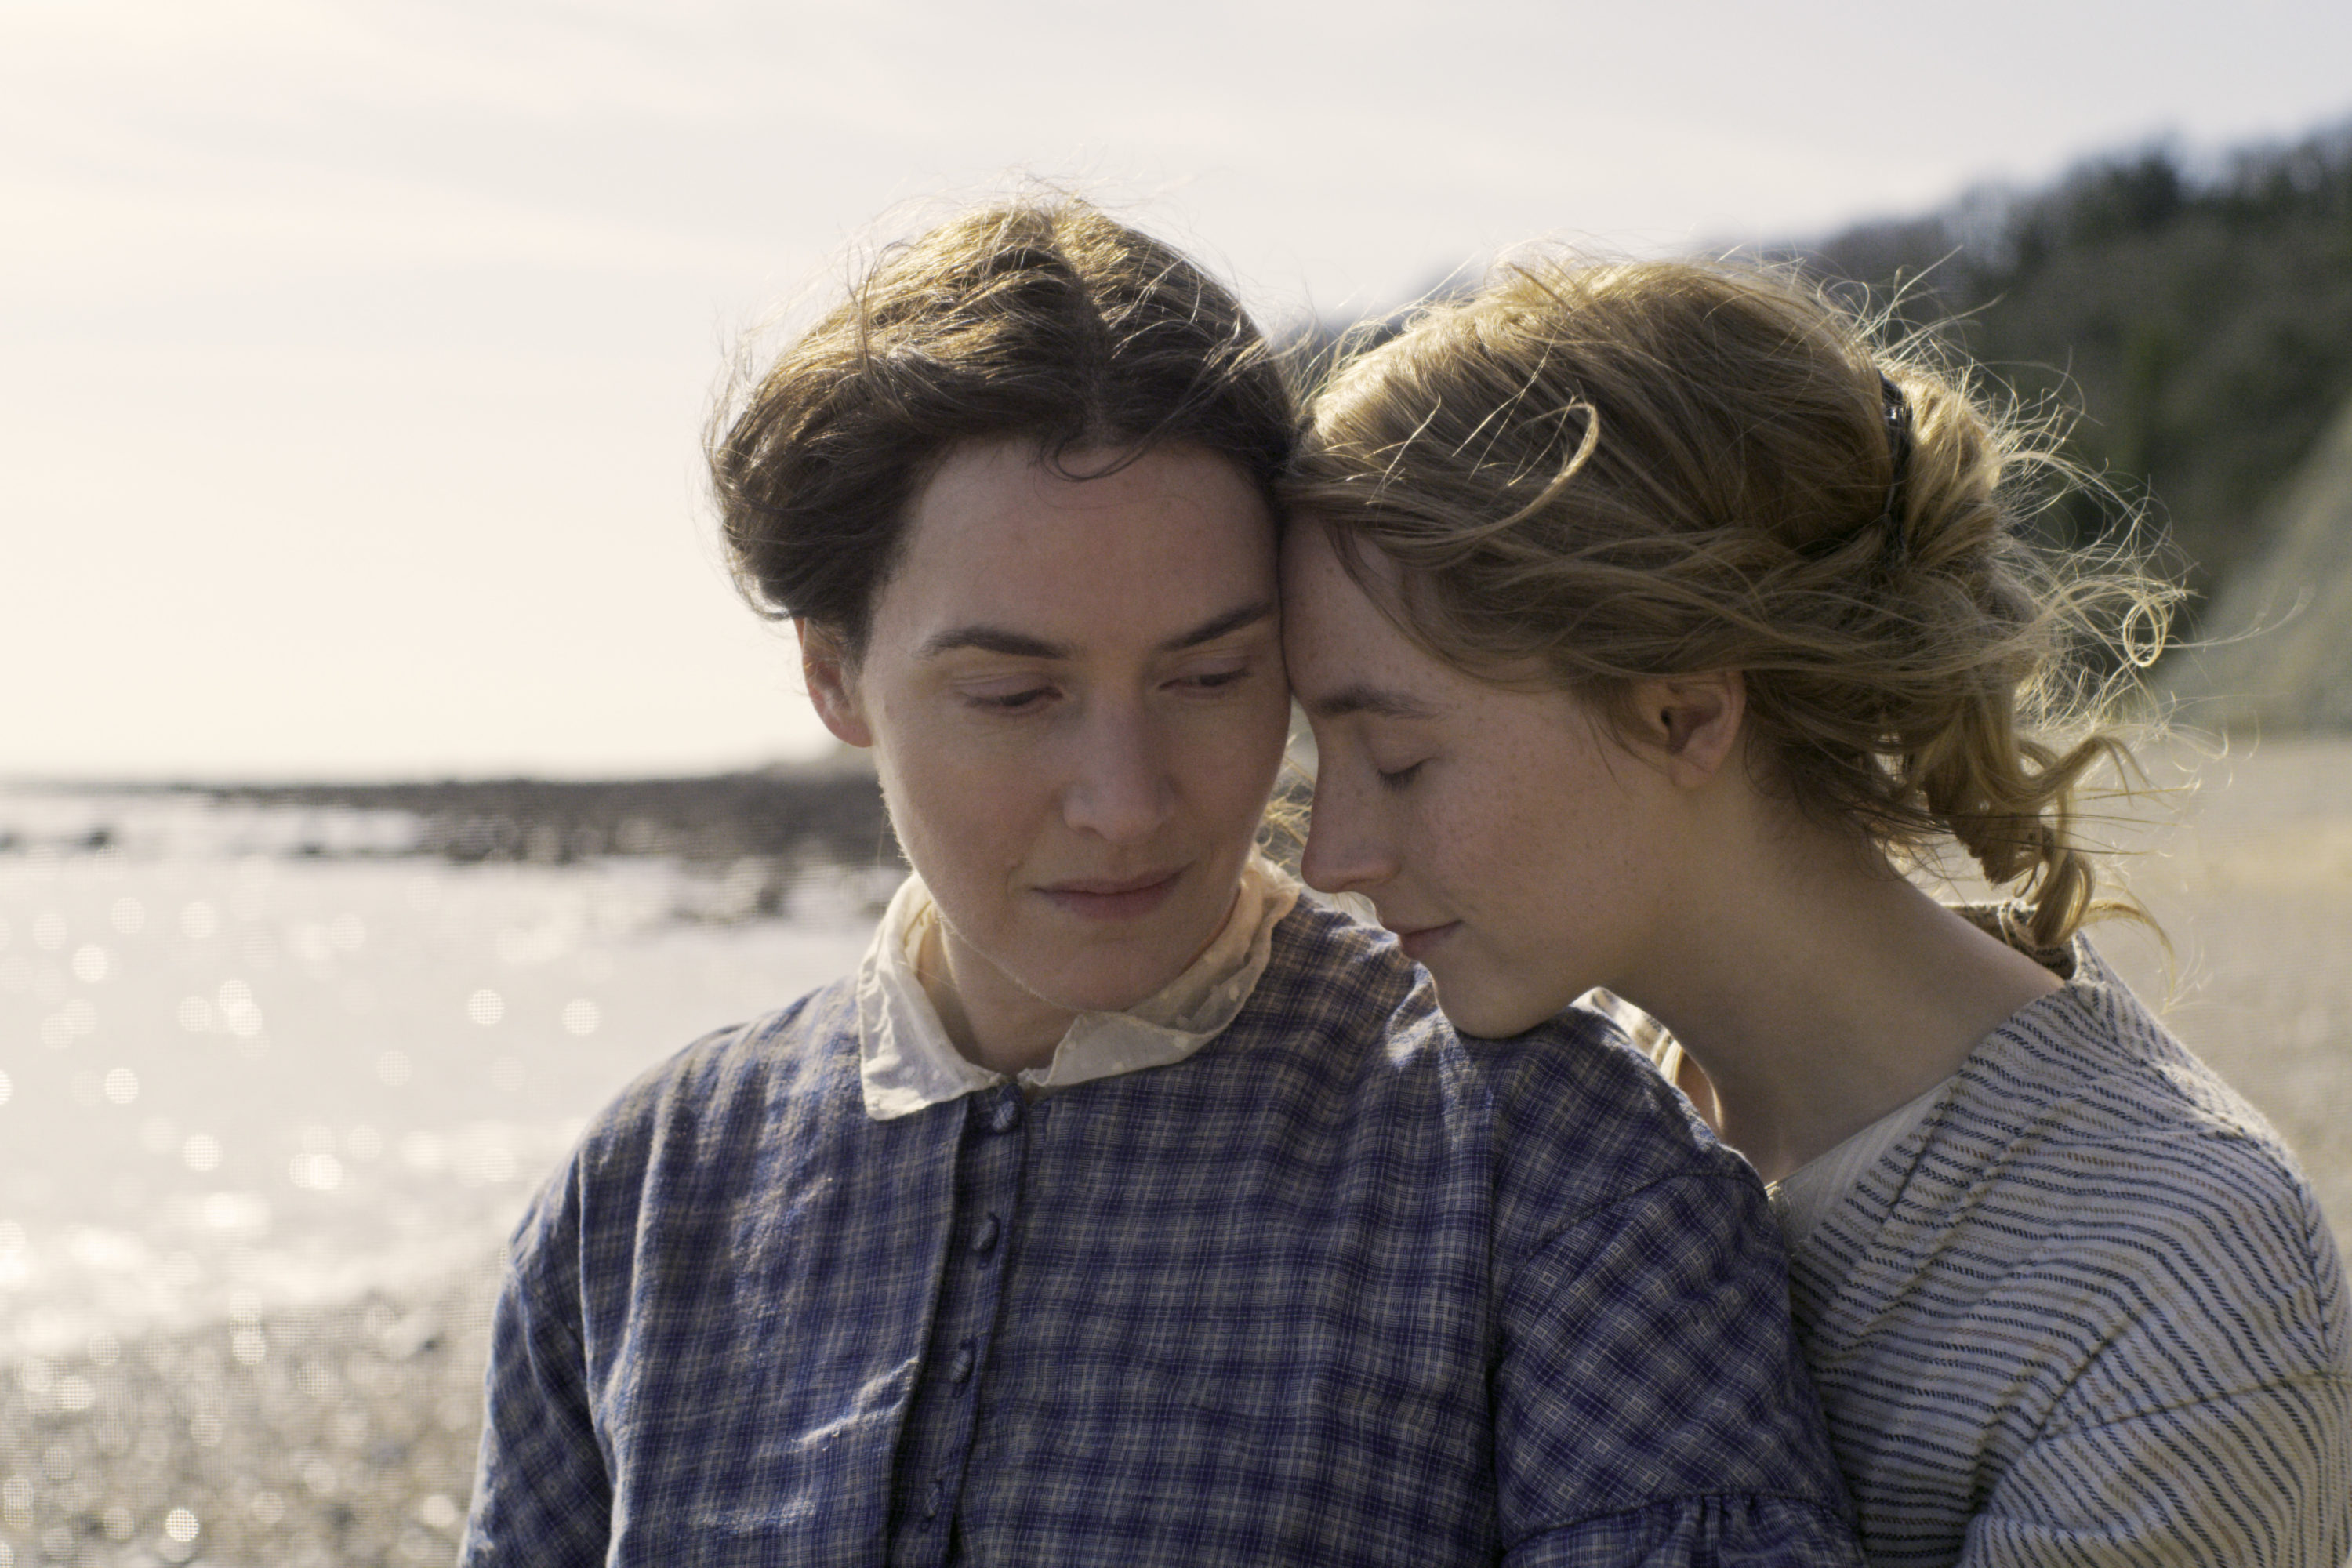 """Kate Winslet (left) and Saoirse Ronan star in director Francis Lee's film """"Ammonite."""" (Courtesy NEON)"""